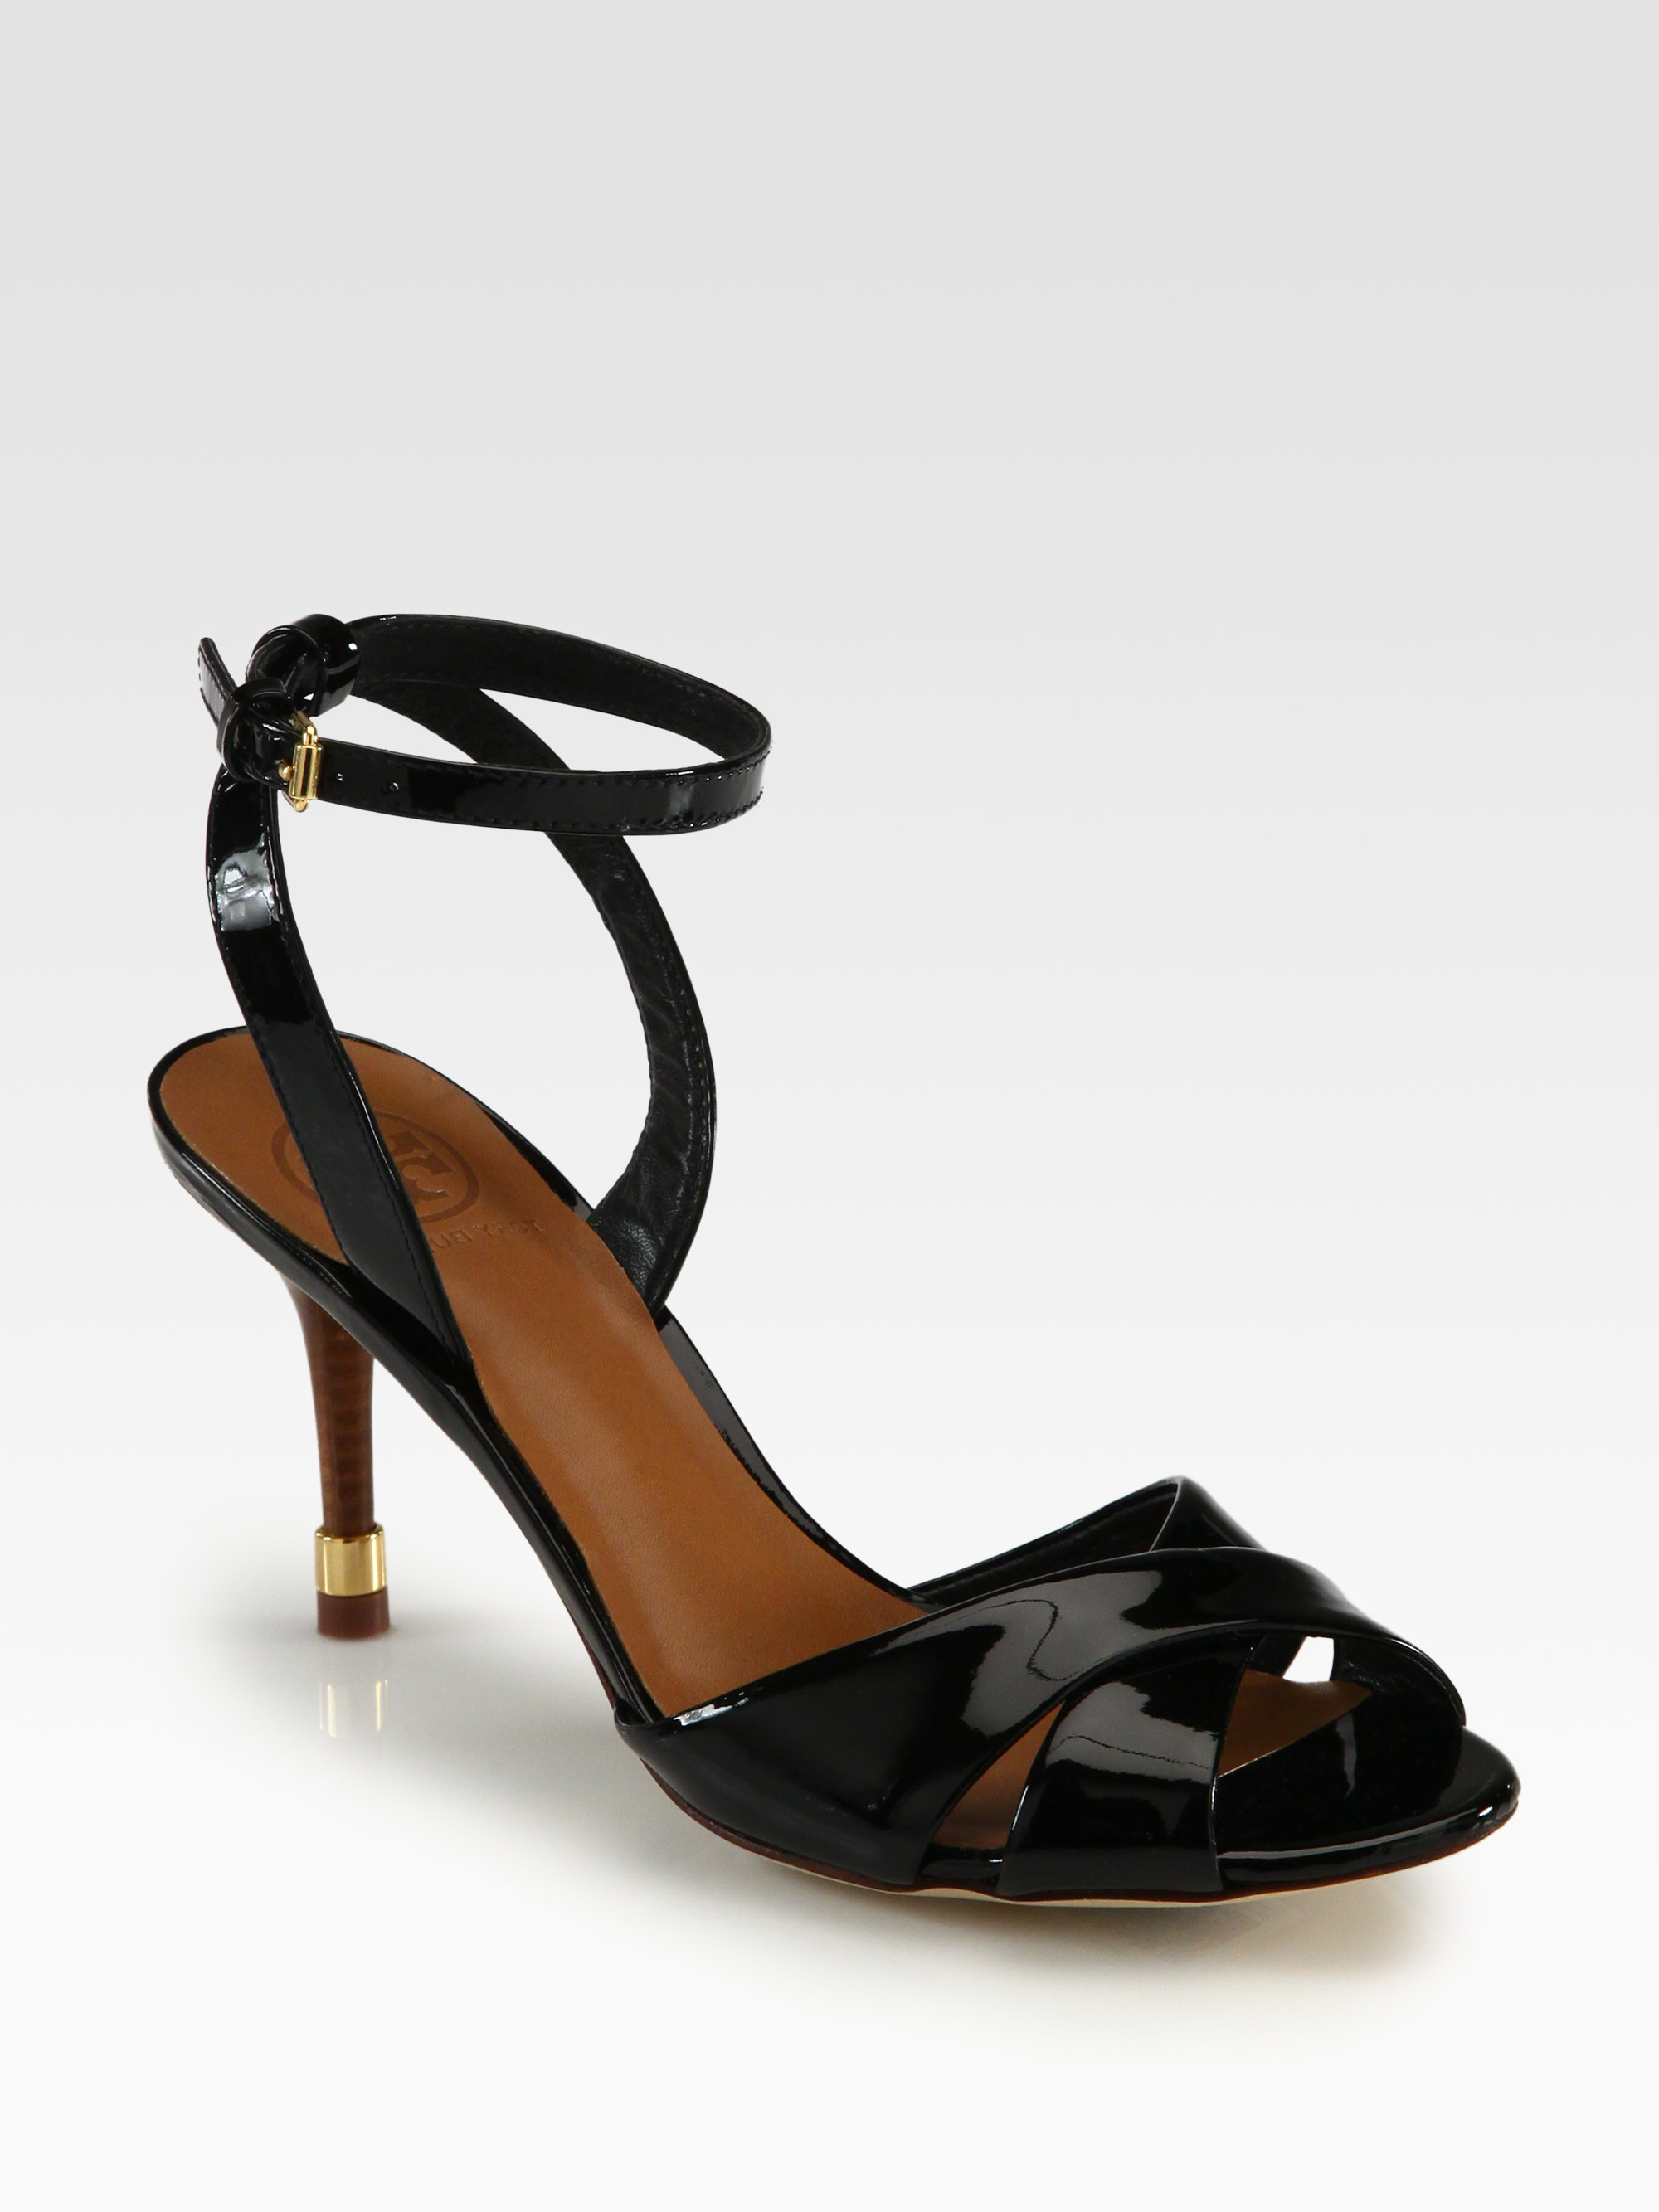 outlet order online shopping online for sale Tory Burch Leather Ankle Strap Pumps new arrival sale online rlfFAouj6K